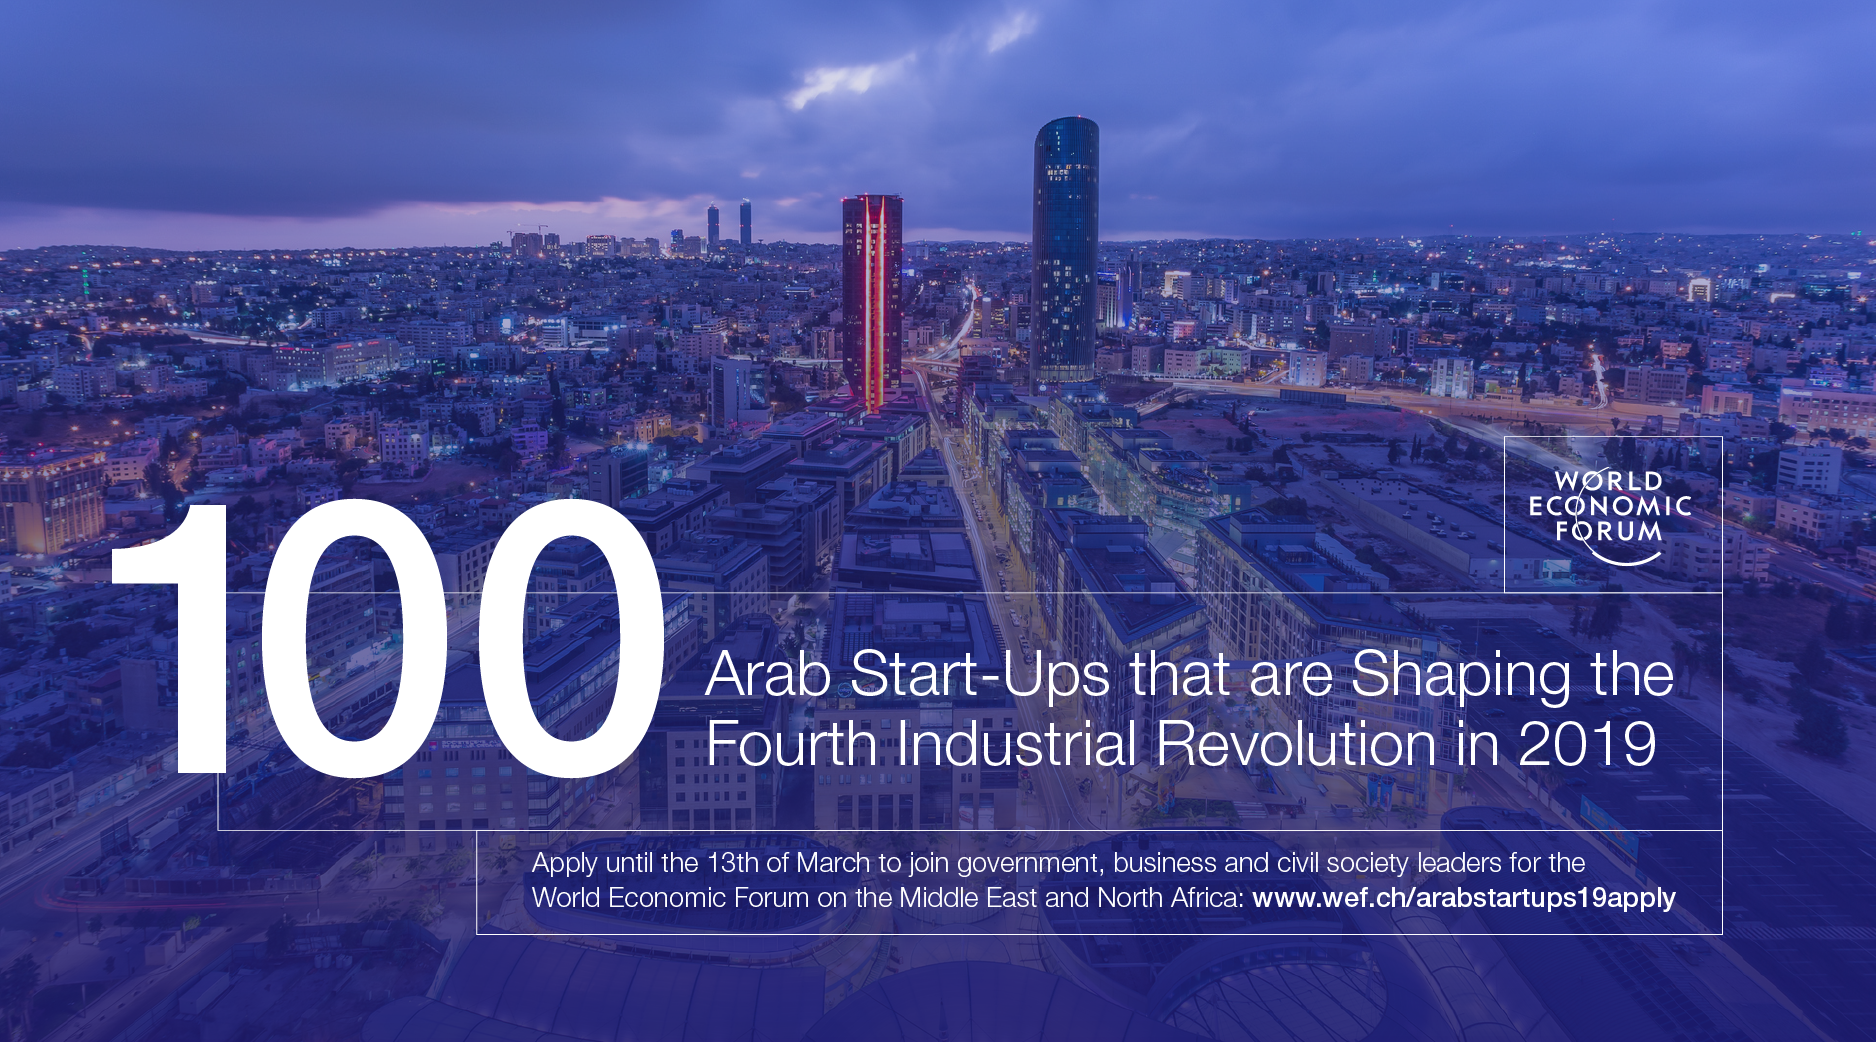 100 Arab Start-ups that are shaping the Fourth Industrial Revolution in 2019